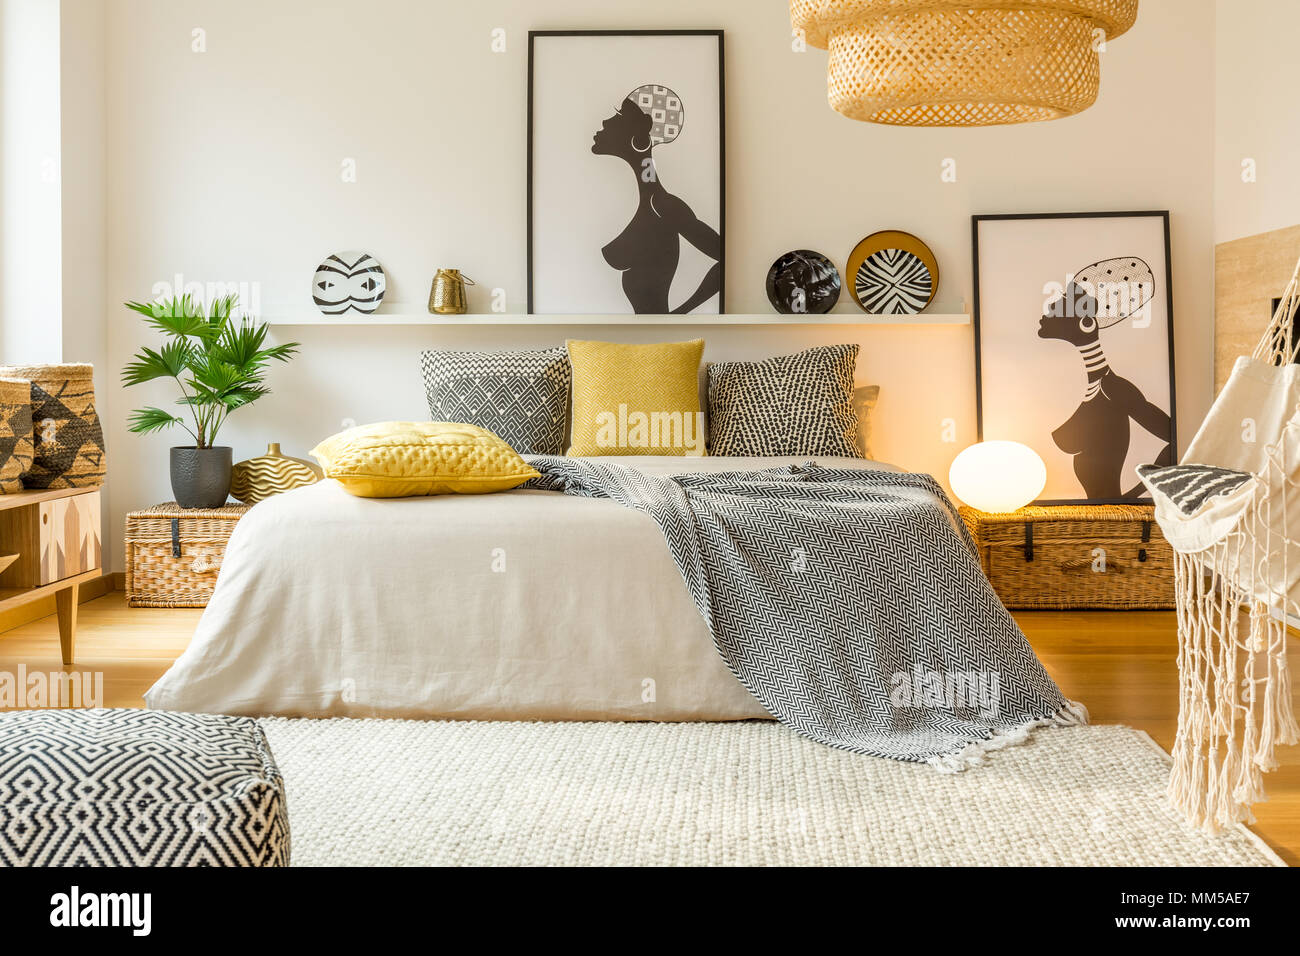 Yellow And Patterned Pillows On Bed In Modern Warm Bedroom Interior With Posters And Plant Stock Photo Alamy